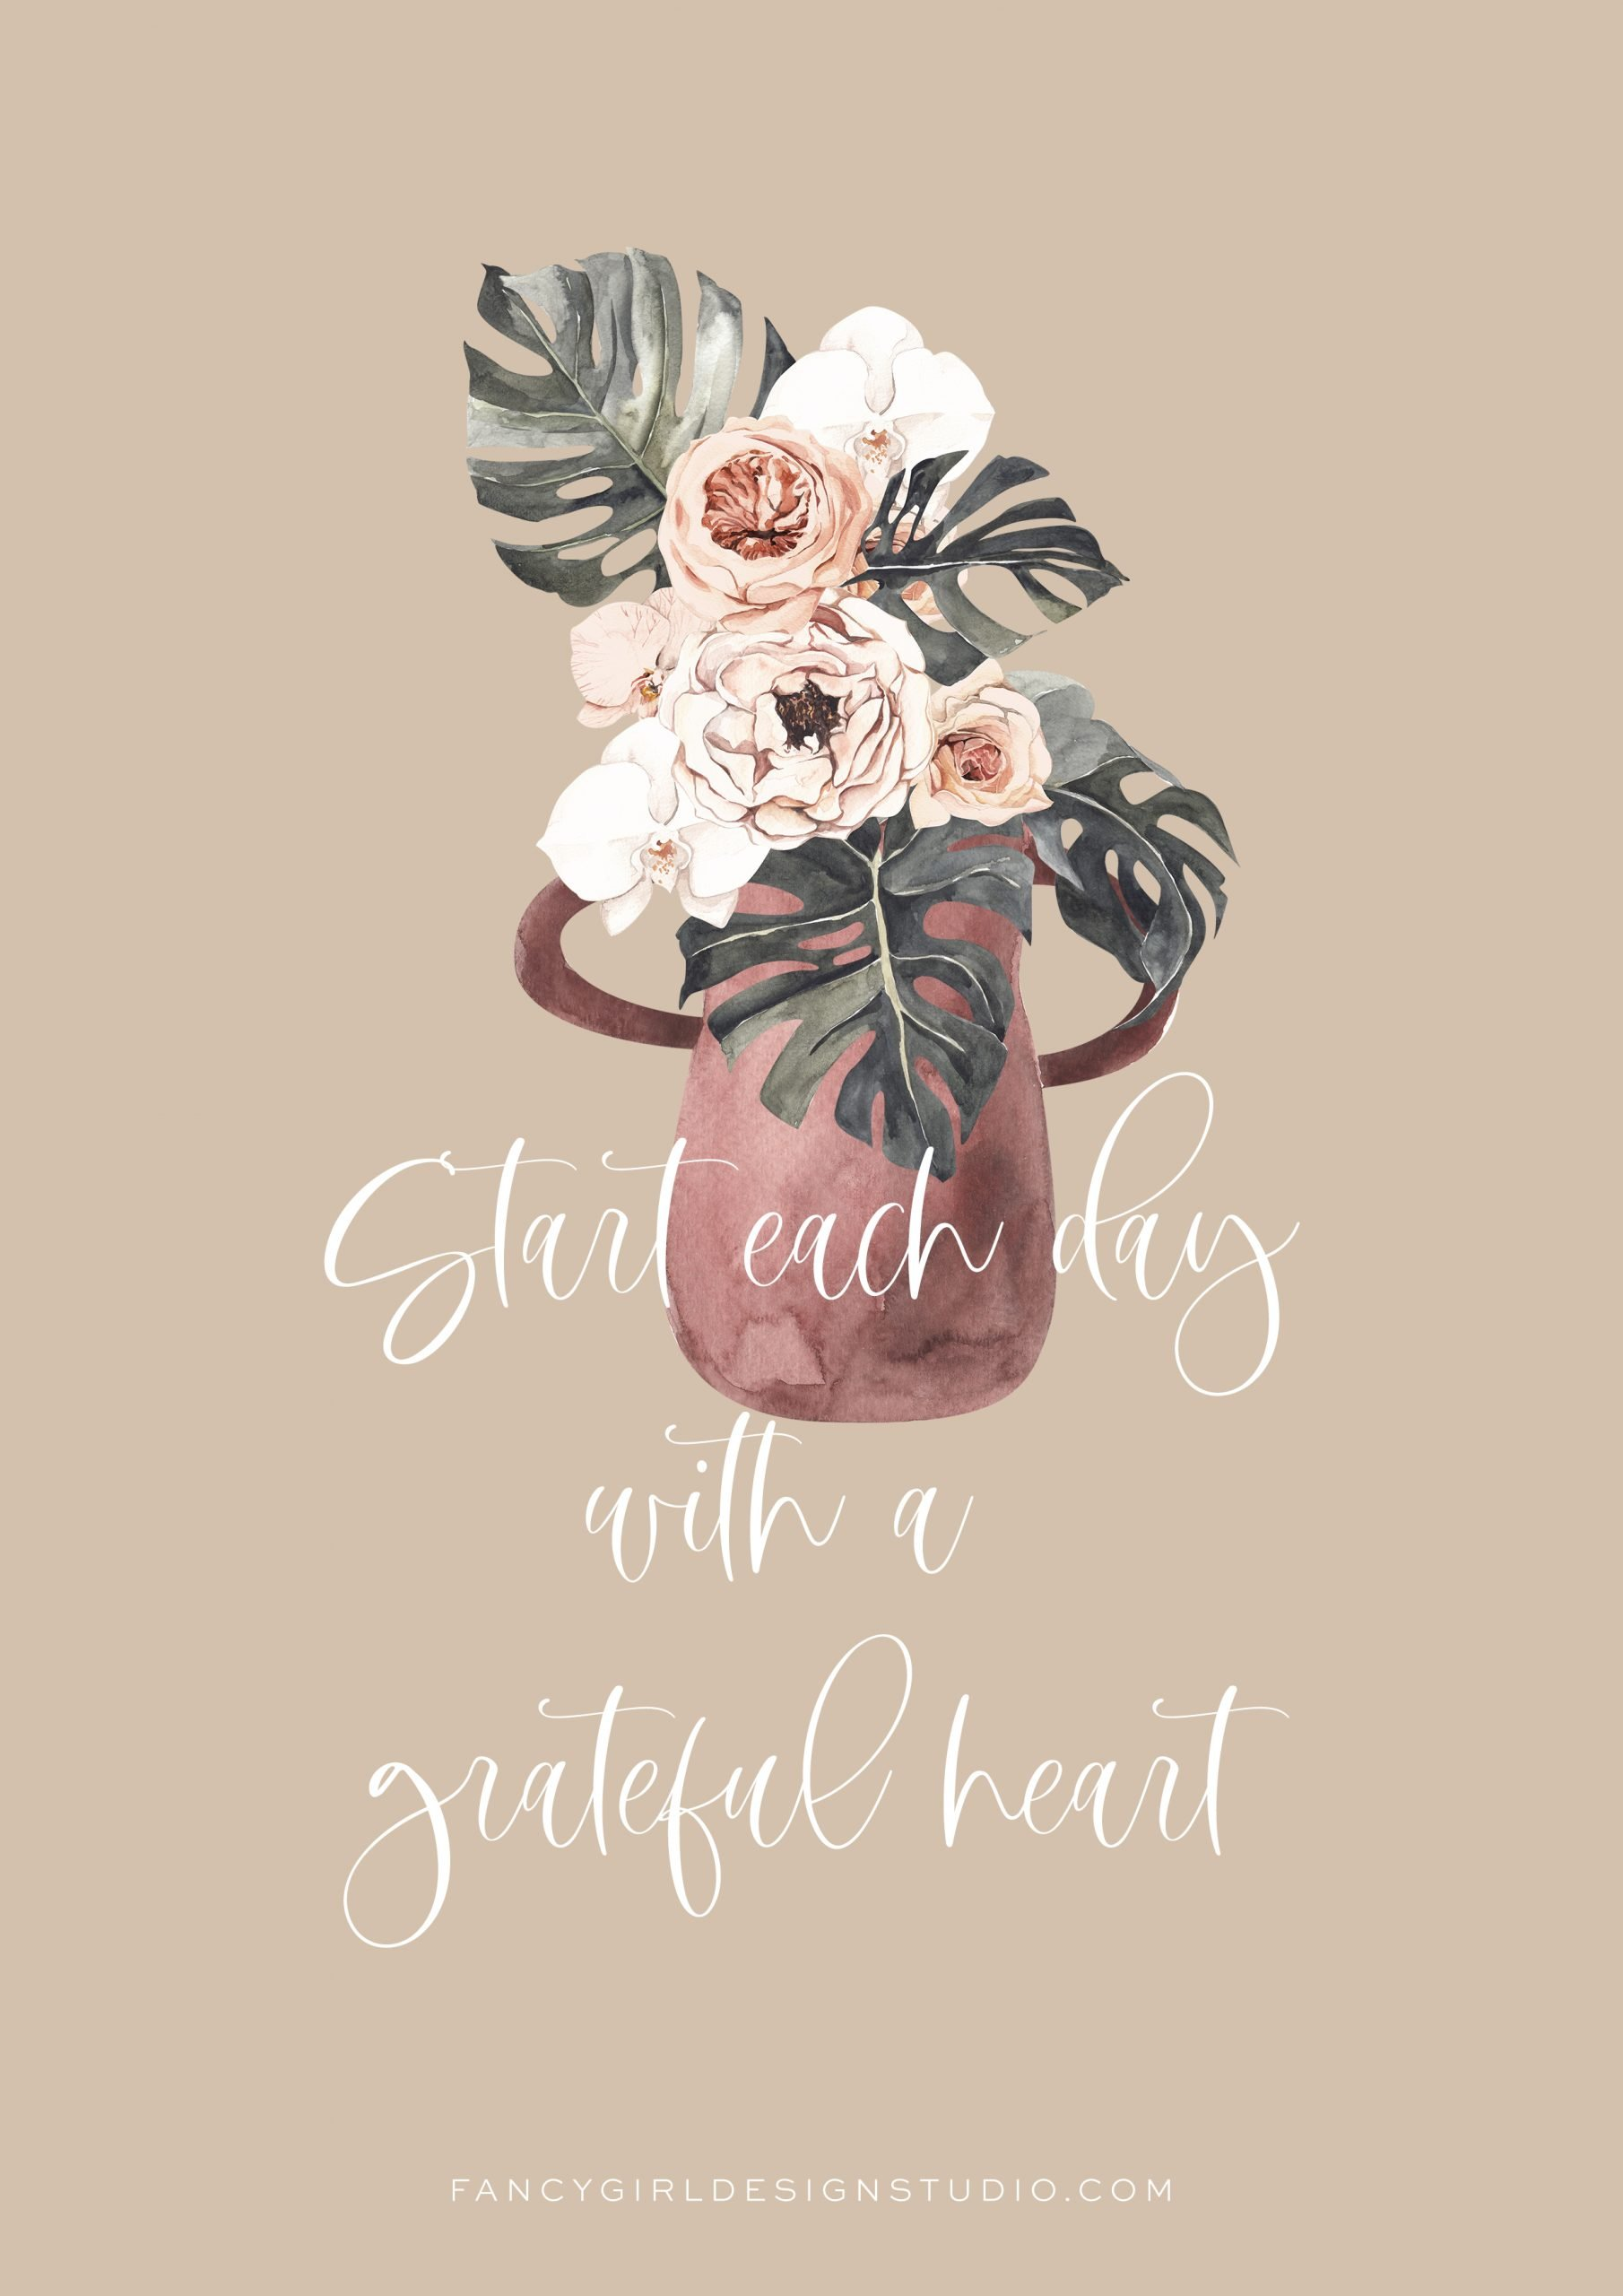 Start each day with a grateful heart. Graphic created by Fancy Girl Design Studio using Canyonlands font.